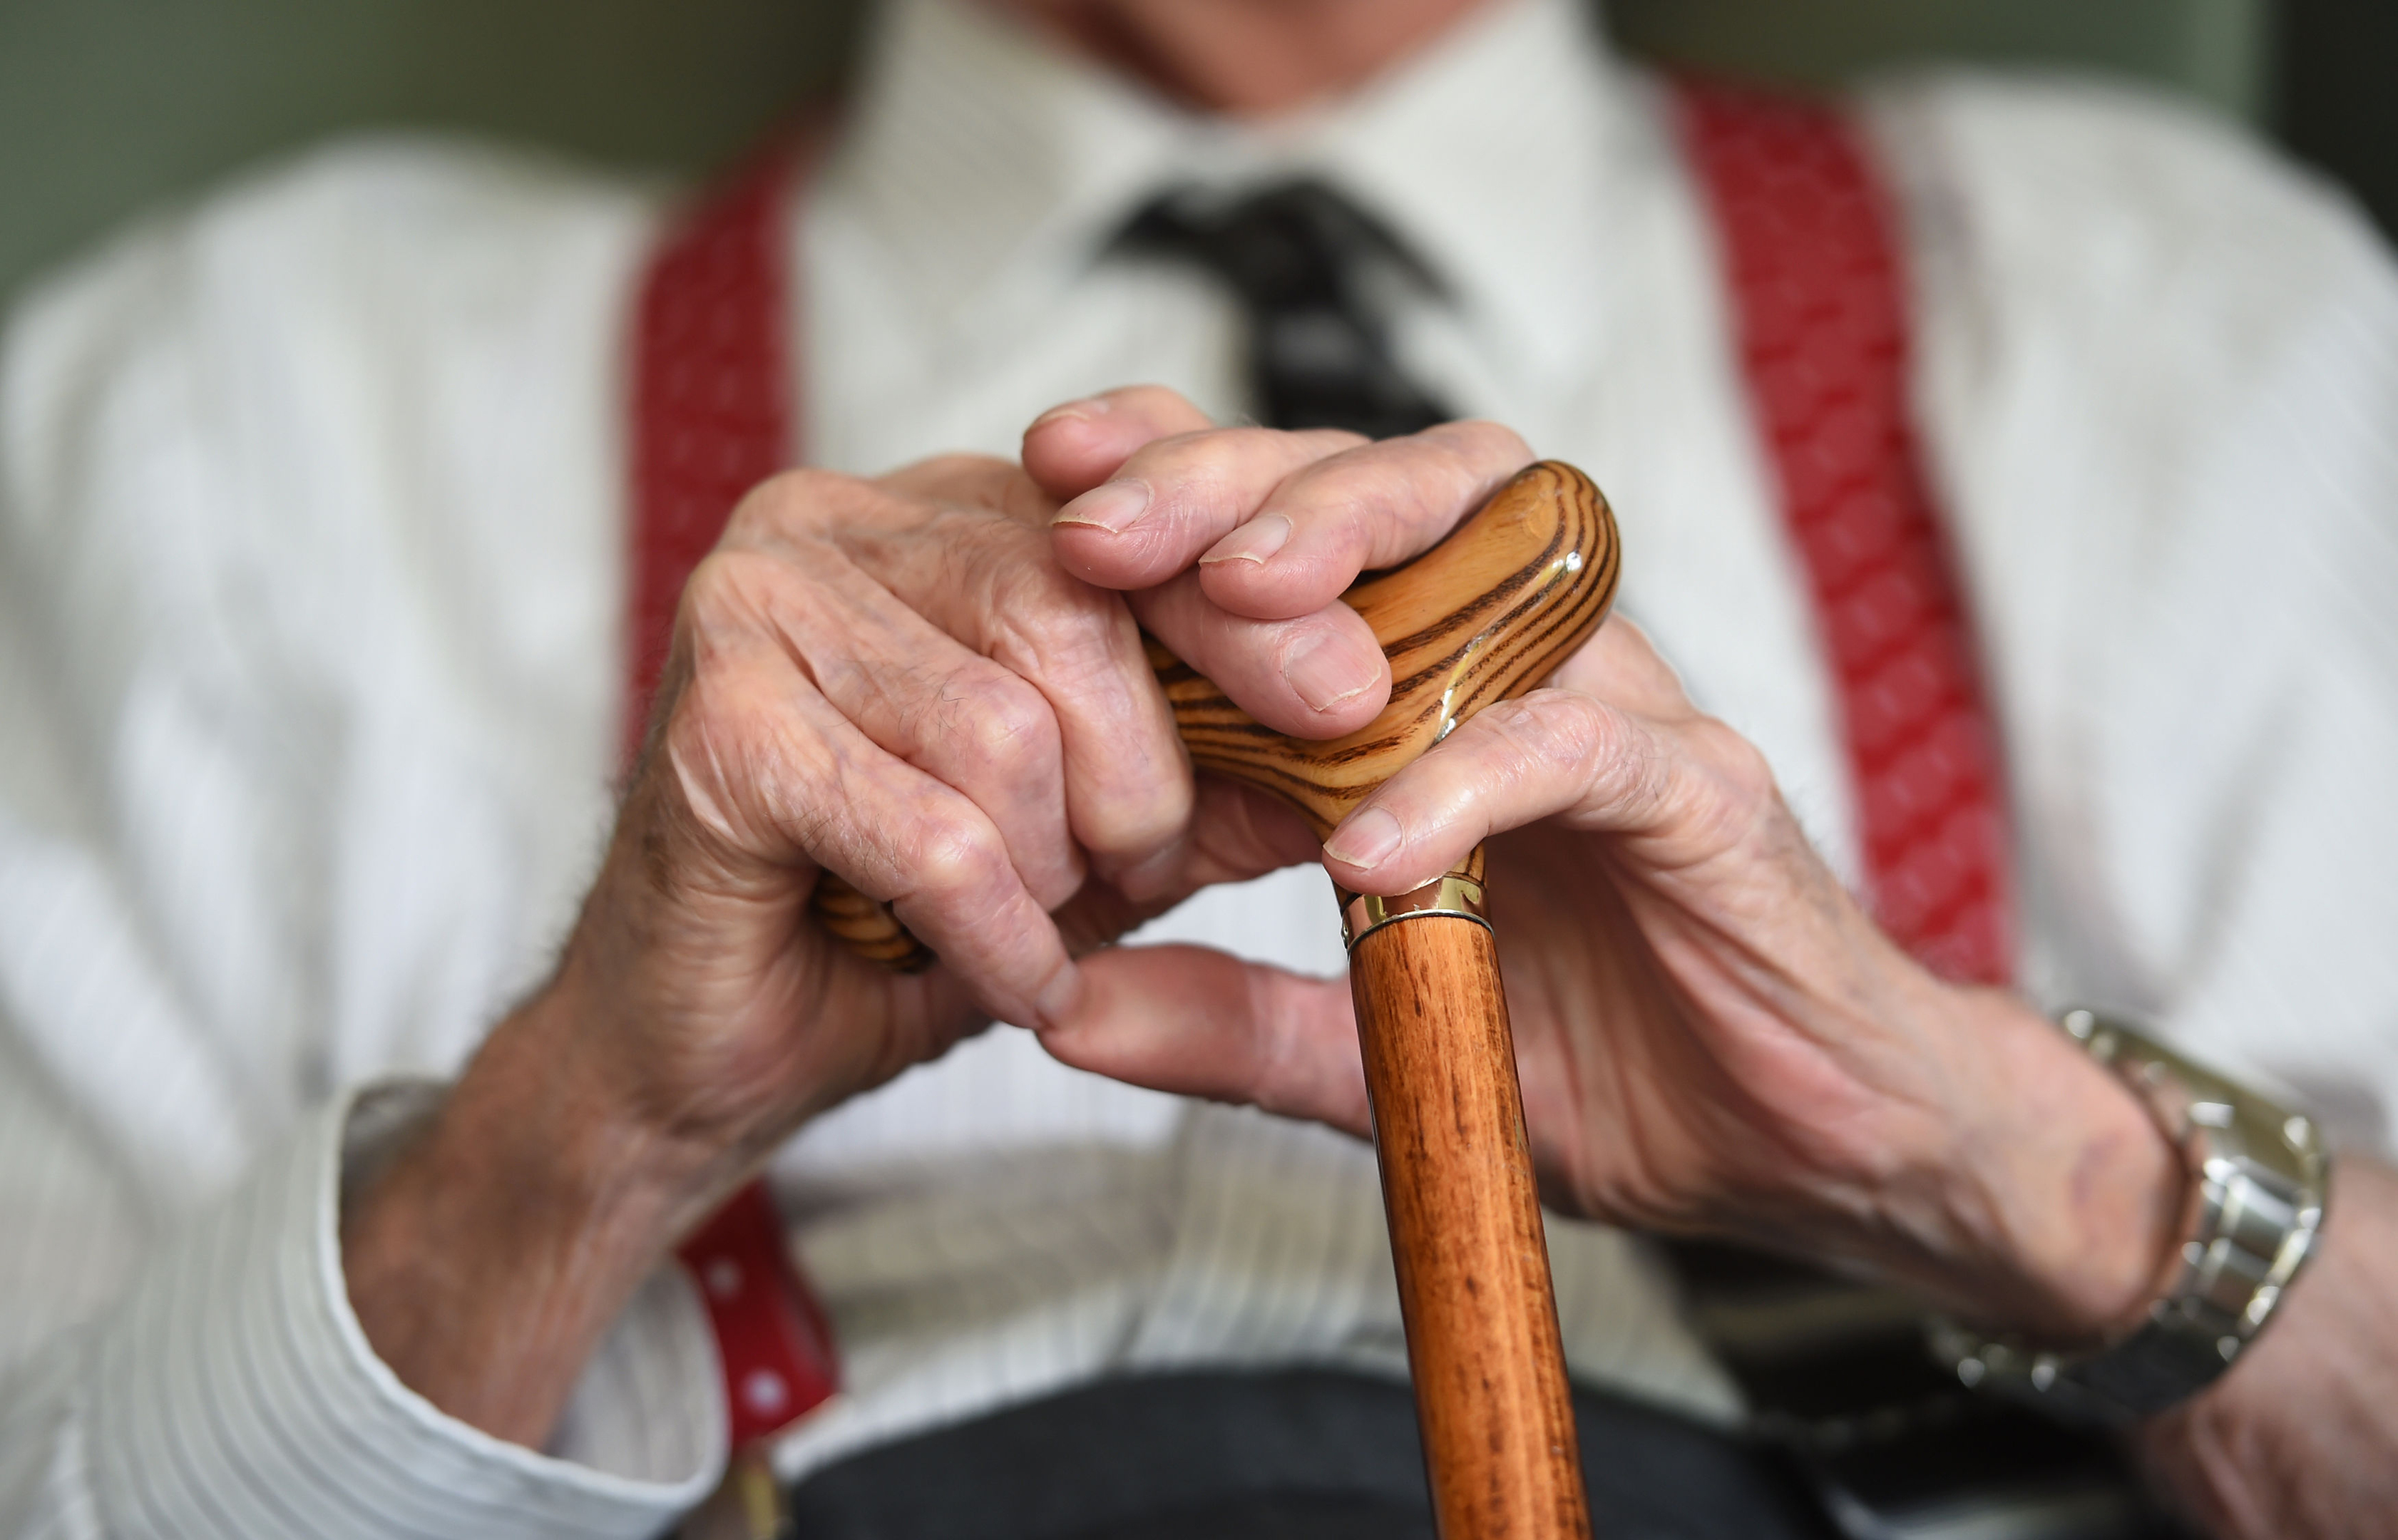 Prominent researchers from across the UK have teamed up on a report highlighting the need for healthcare to keep pace with the latest scientific understanding of dementia. (Joe Giddens/PA Wire)